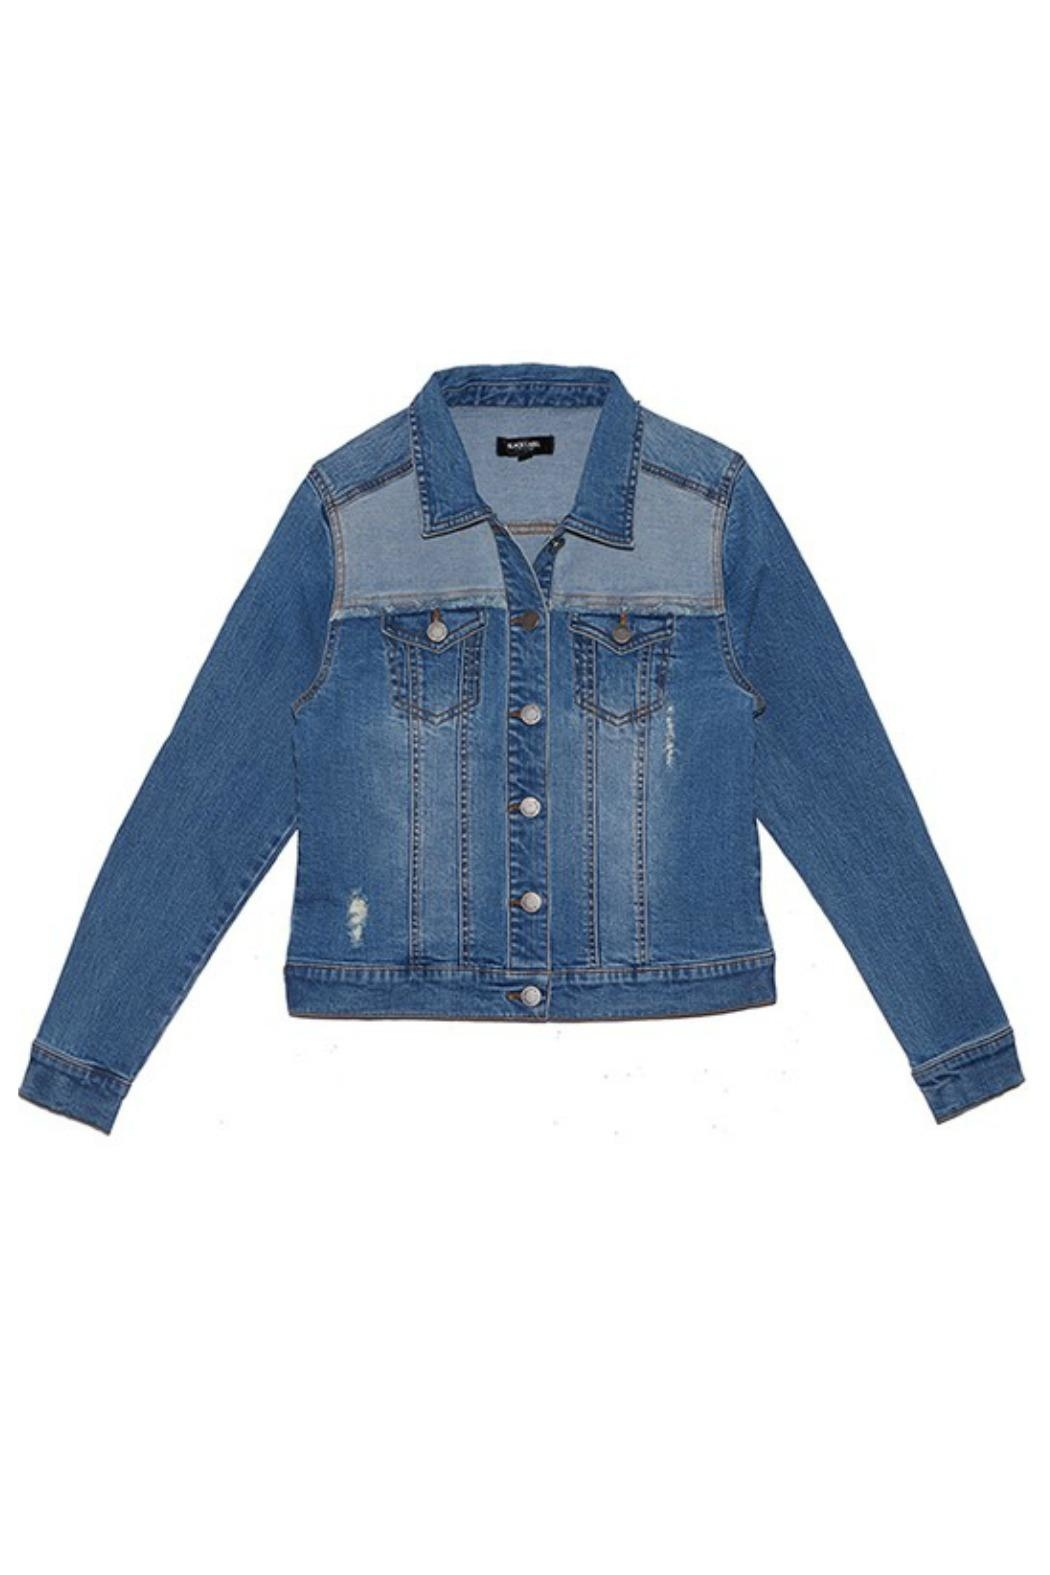 C'ESTTOI Distressed Multi Denim Jacket - Main Image